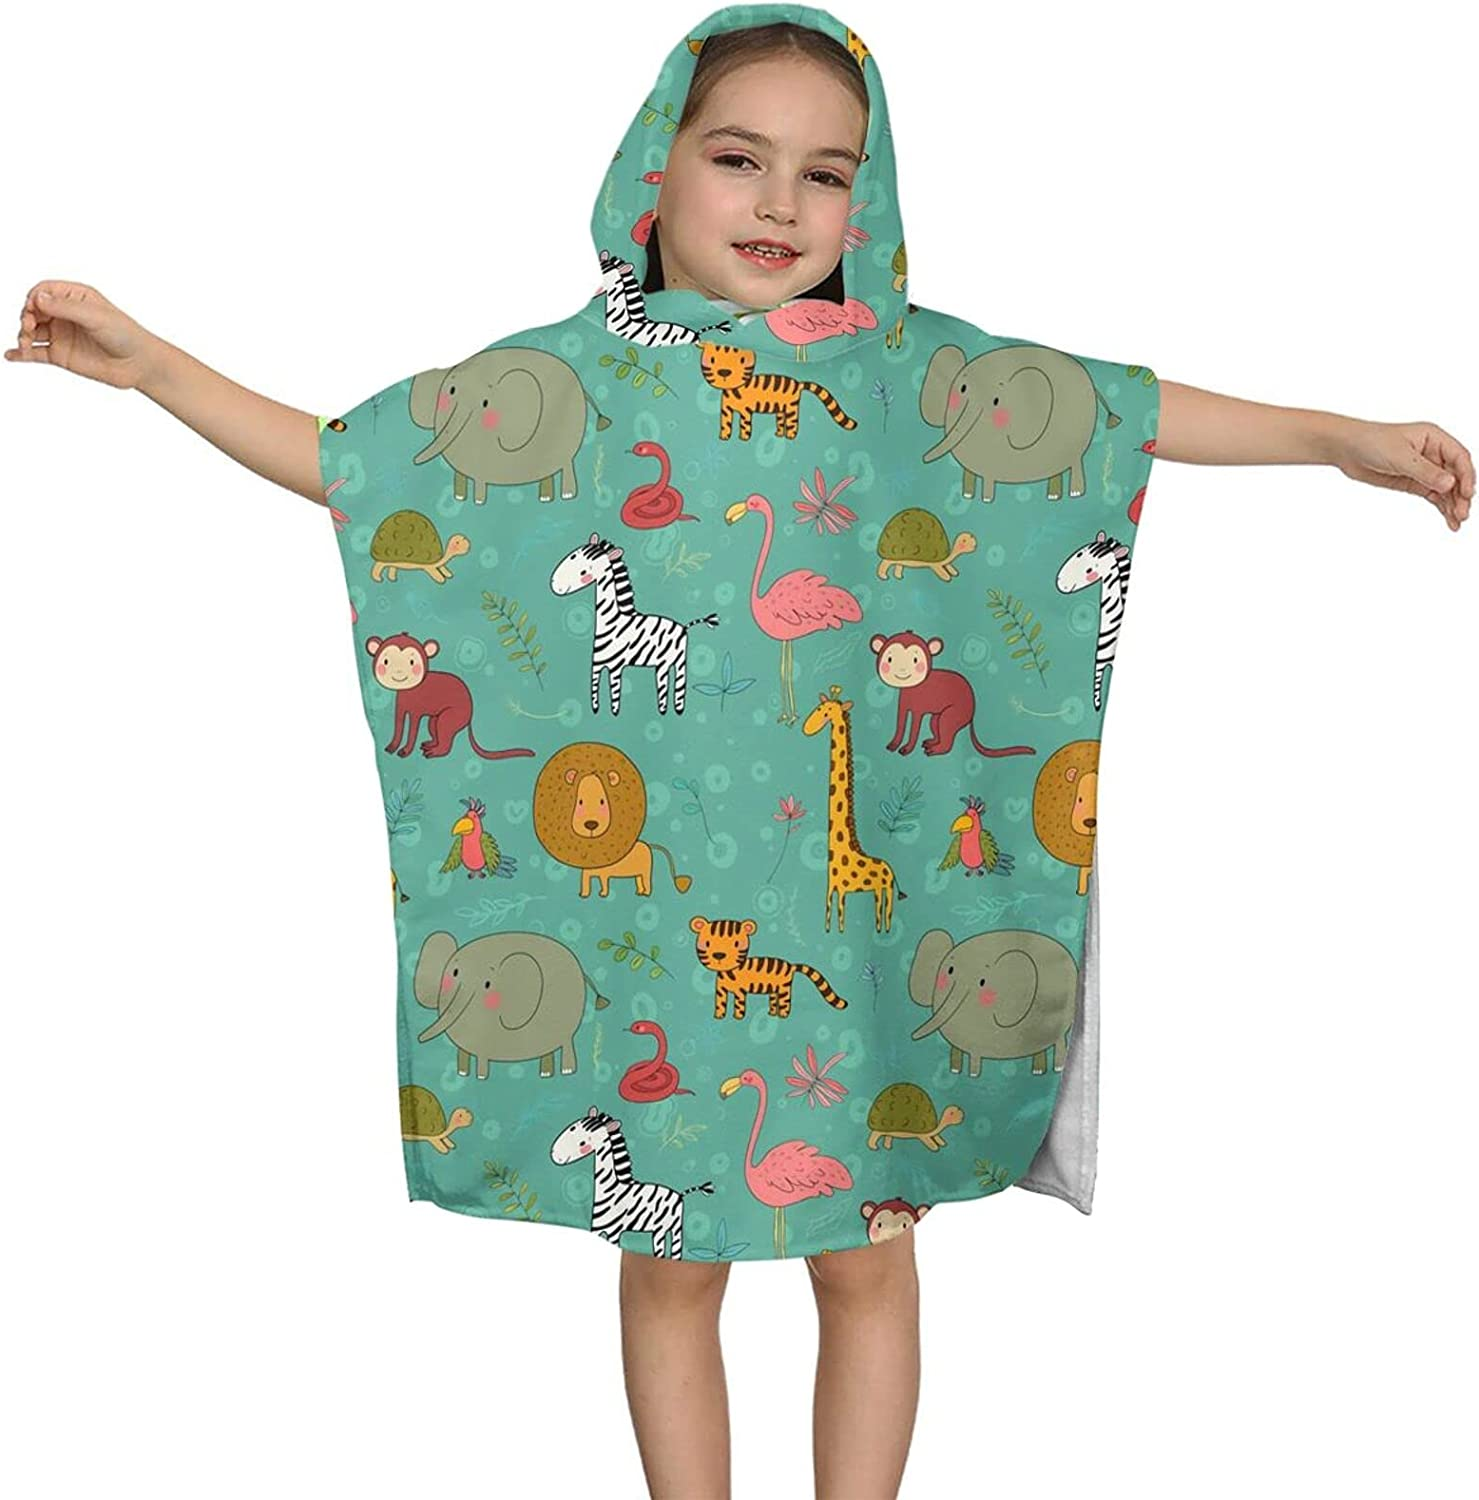 Hooded Bath Towel Africa Discount is also underway Animals Soft Bea Kids Sale special price Wrap